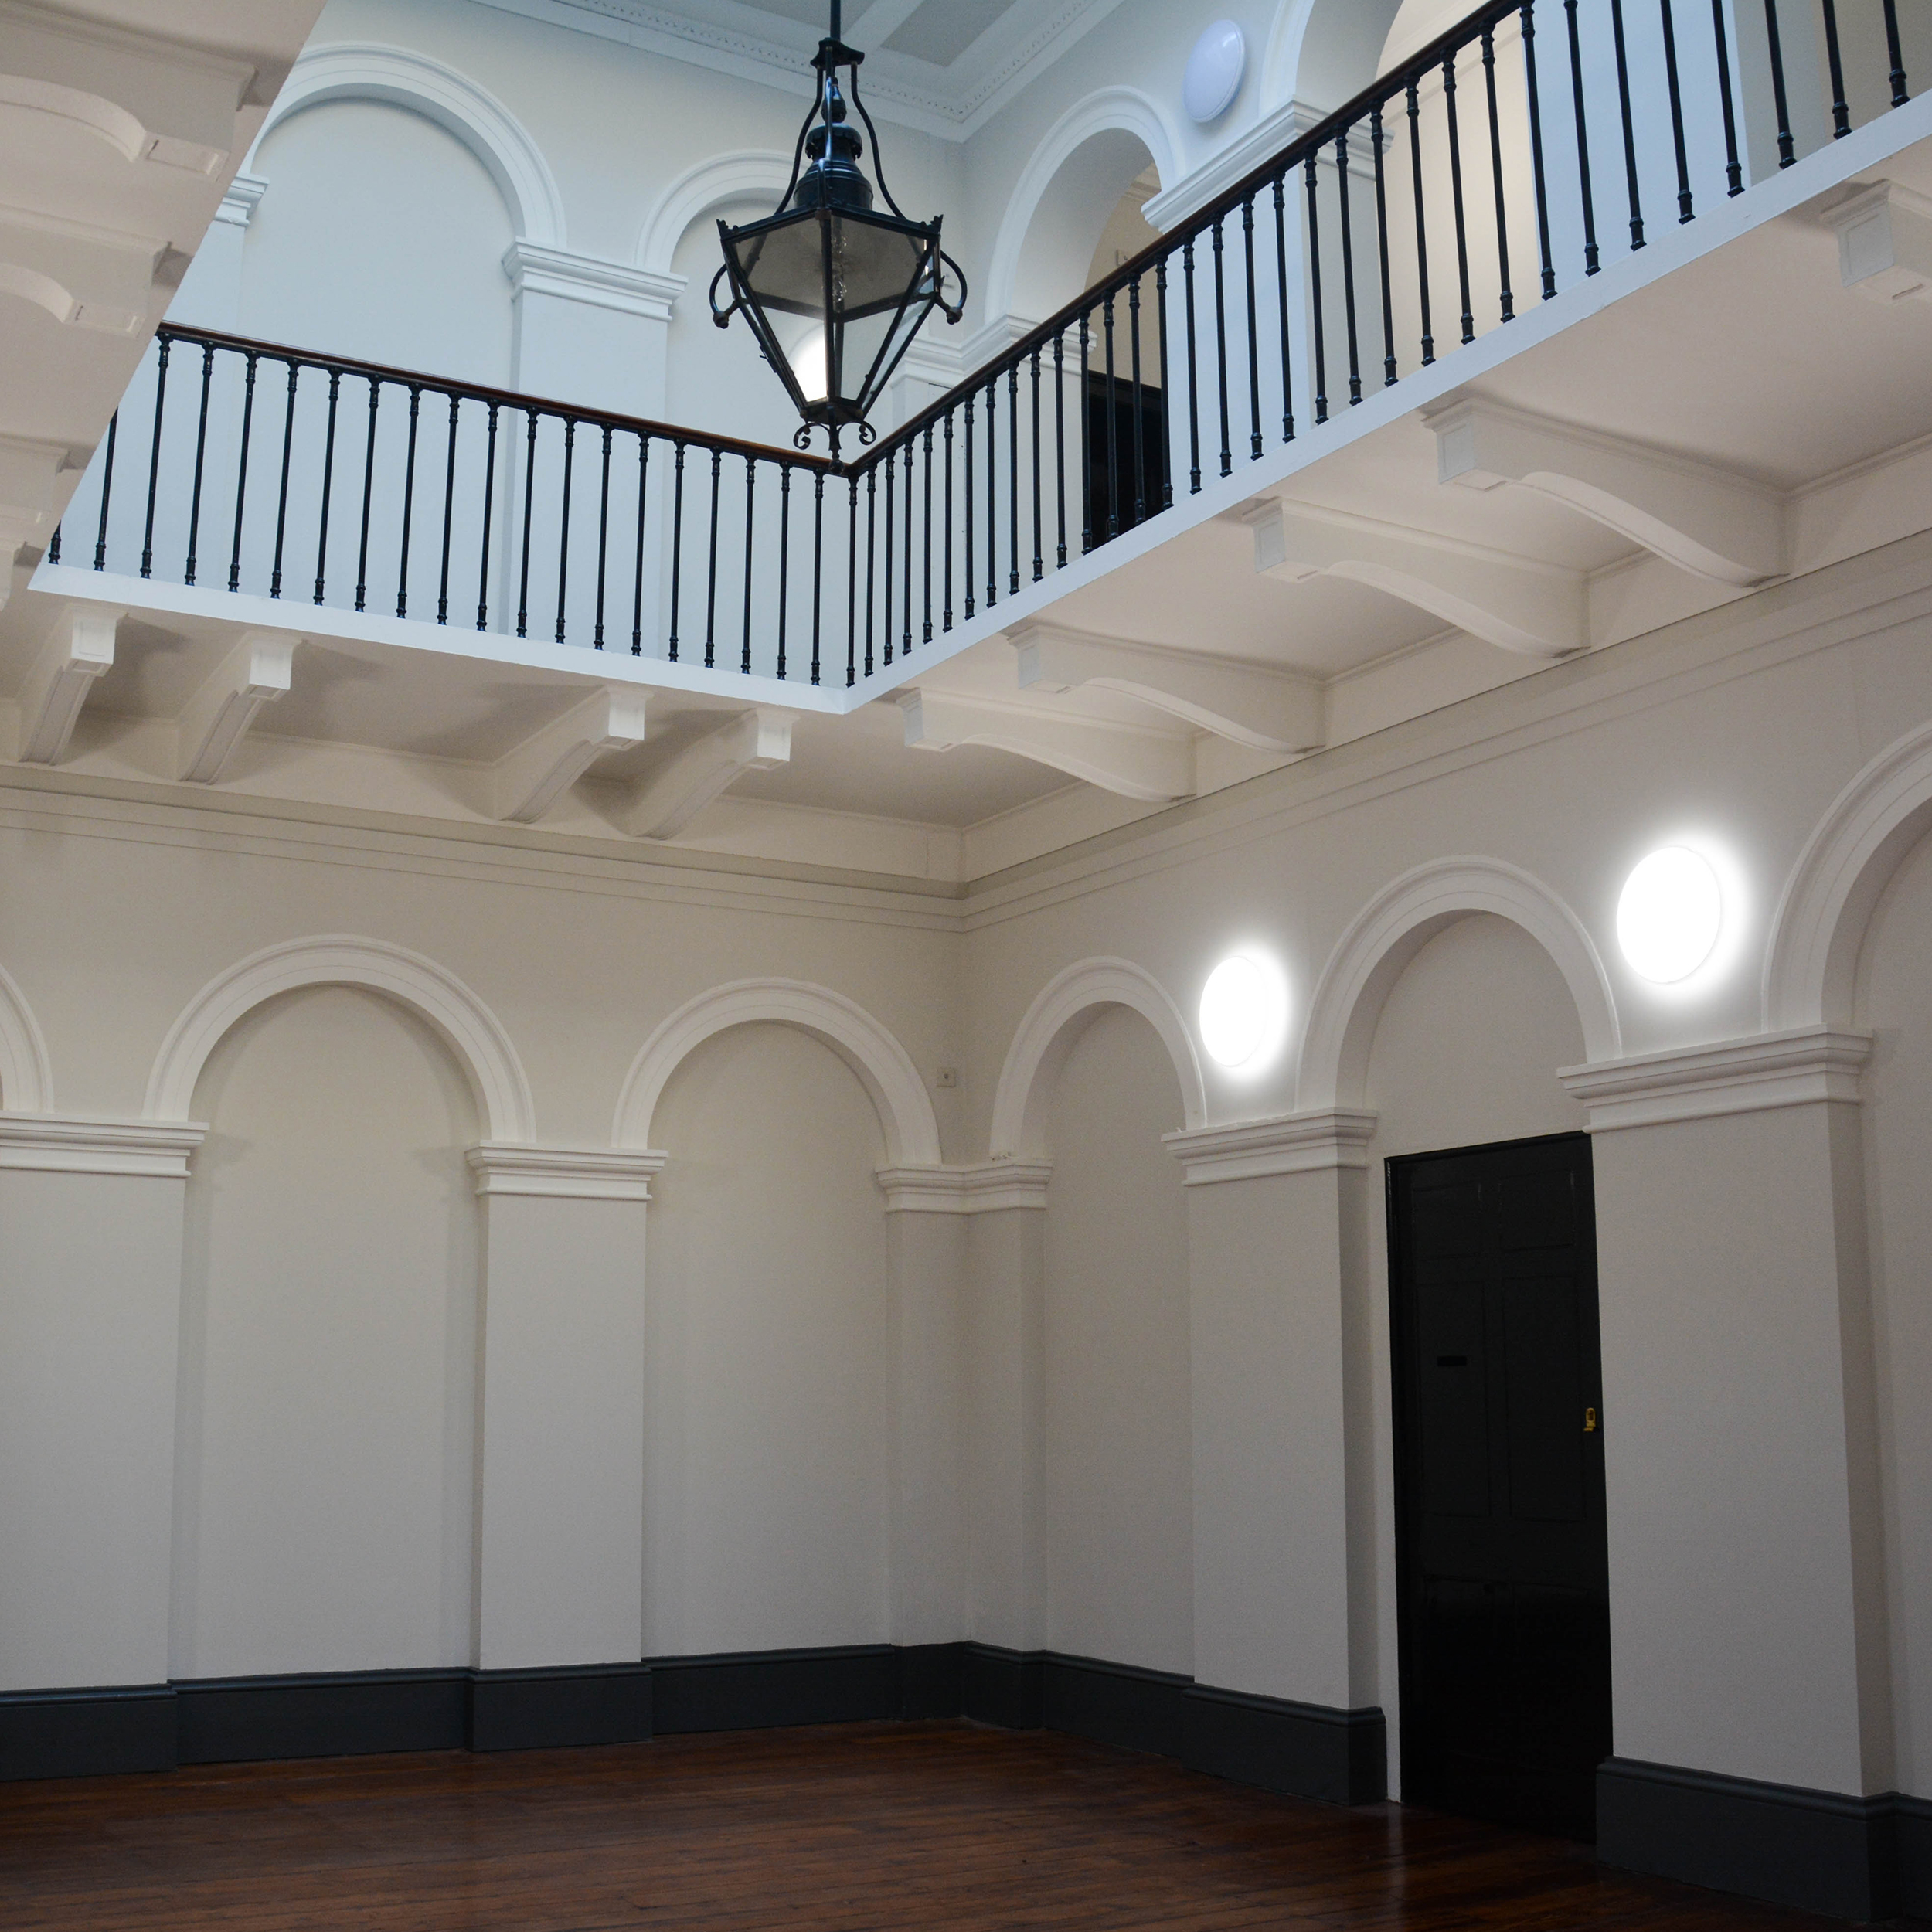 Large open hall inside a listed heritage building after repairs